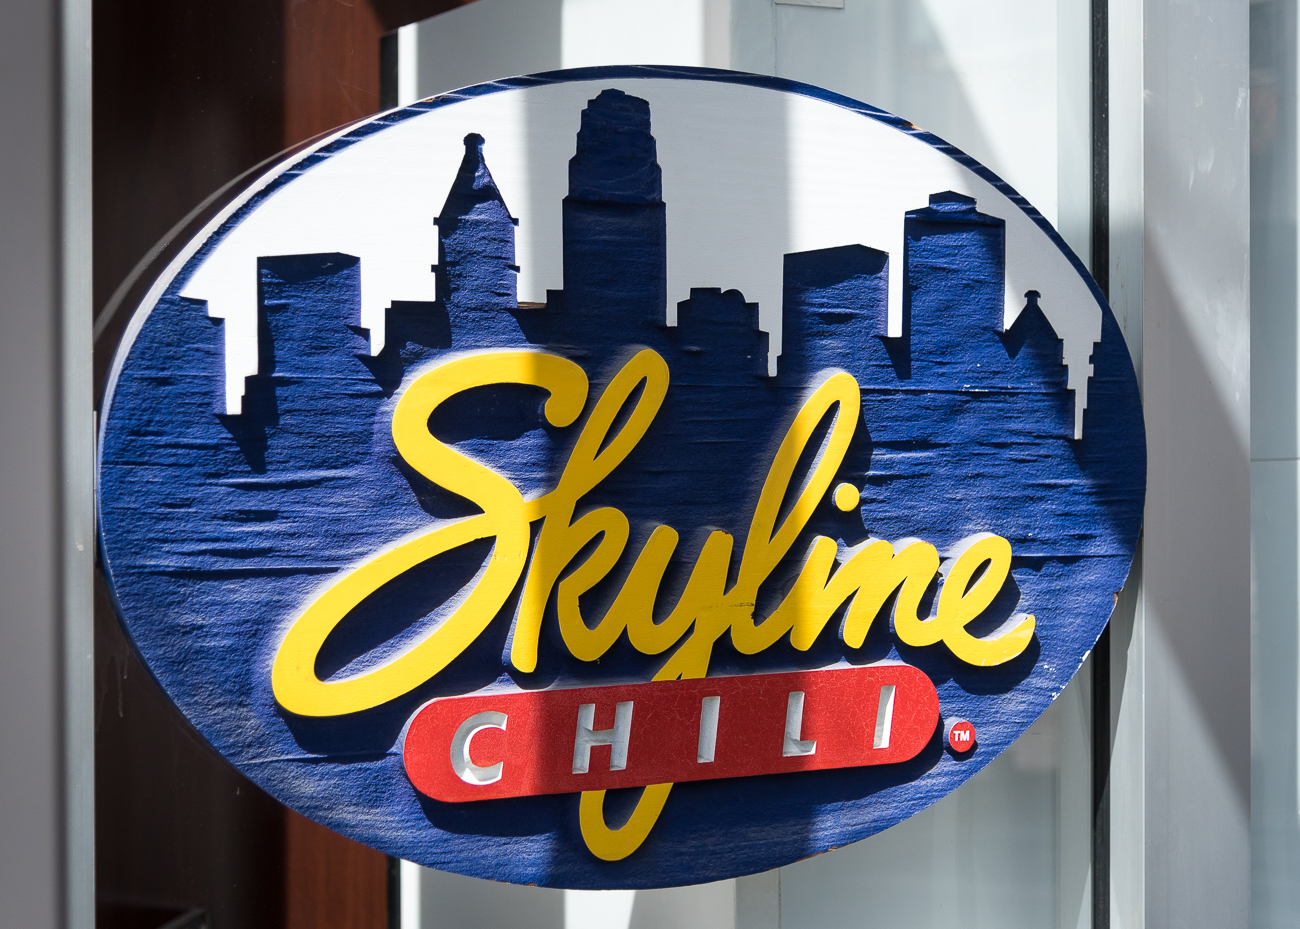 4th Street has a Skyline Chili / ADDRESS: 254 E 4th Street / Image: Phil Armstrong, Cincinnati Refined // Published: 4.23.18